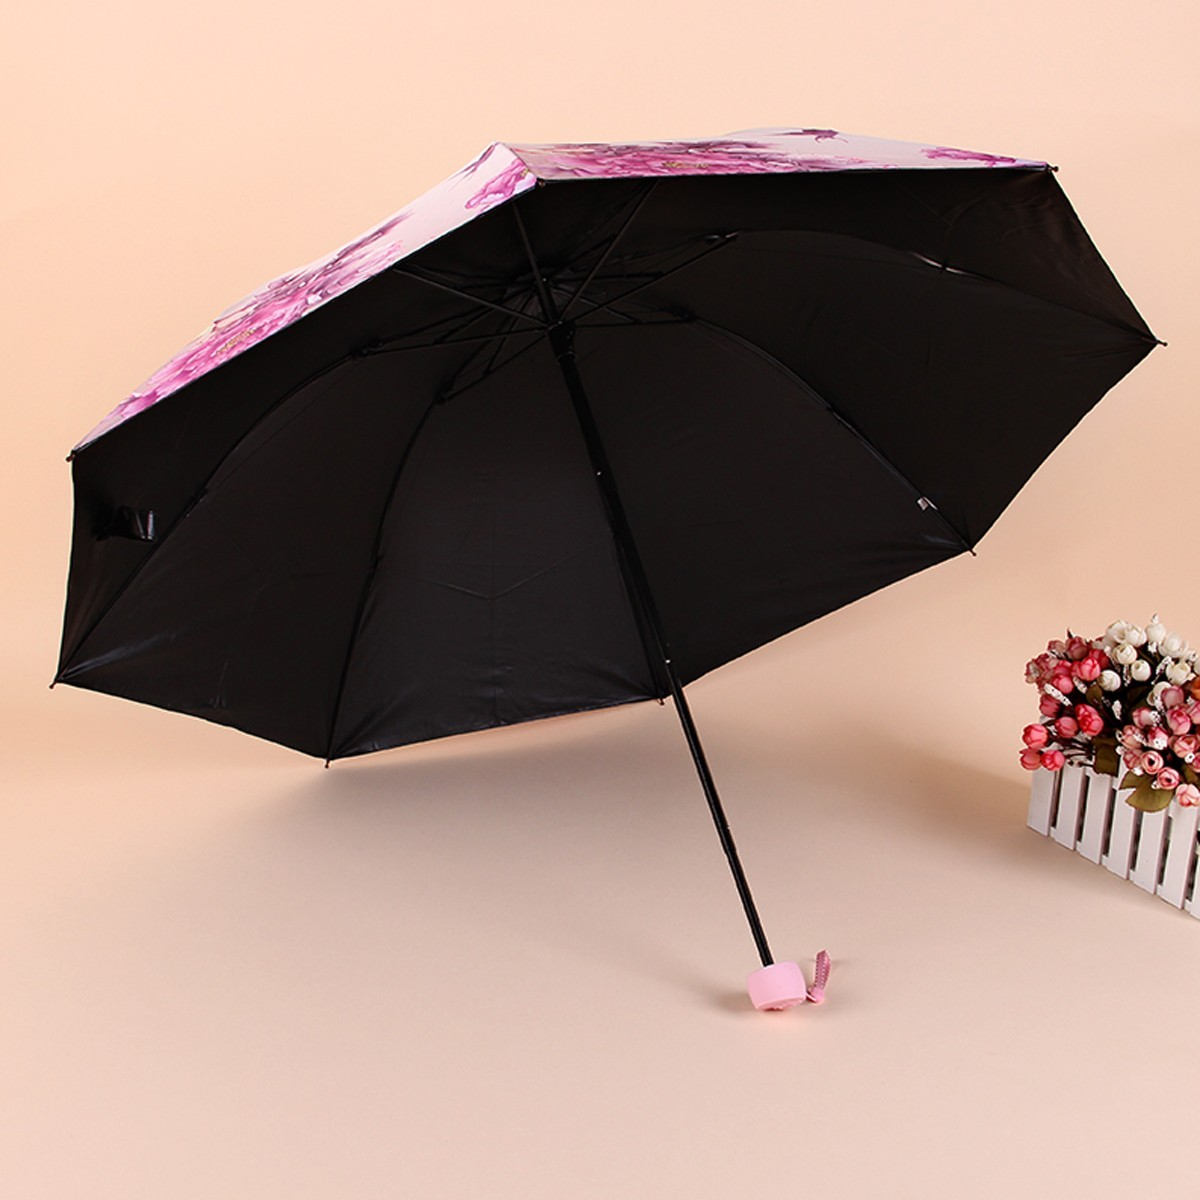 new floral compact folding anti uv rain daisy women lady parasol sun umbrella ebay. Black Bedroom Furniture Sets. Home Design Ideas